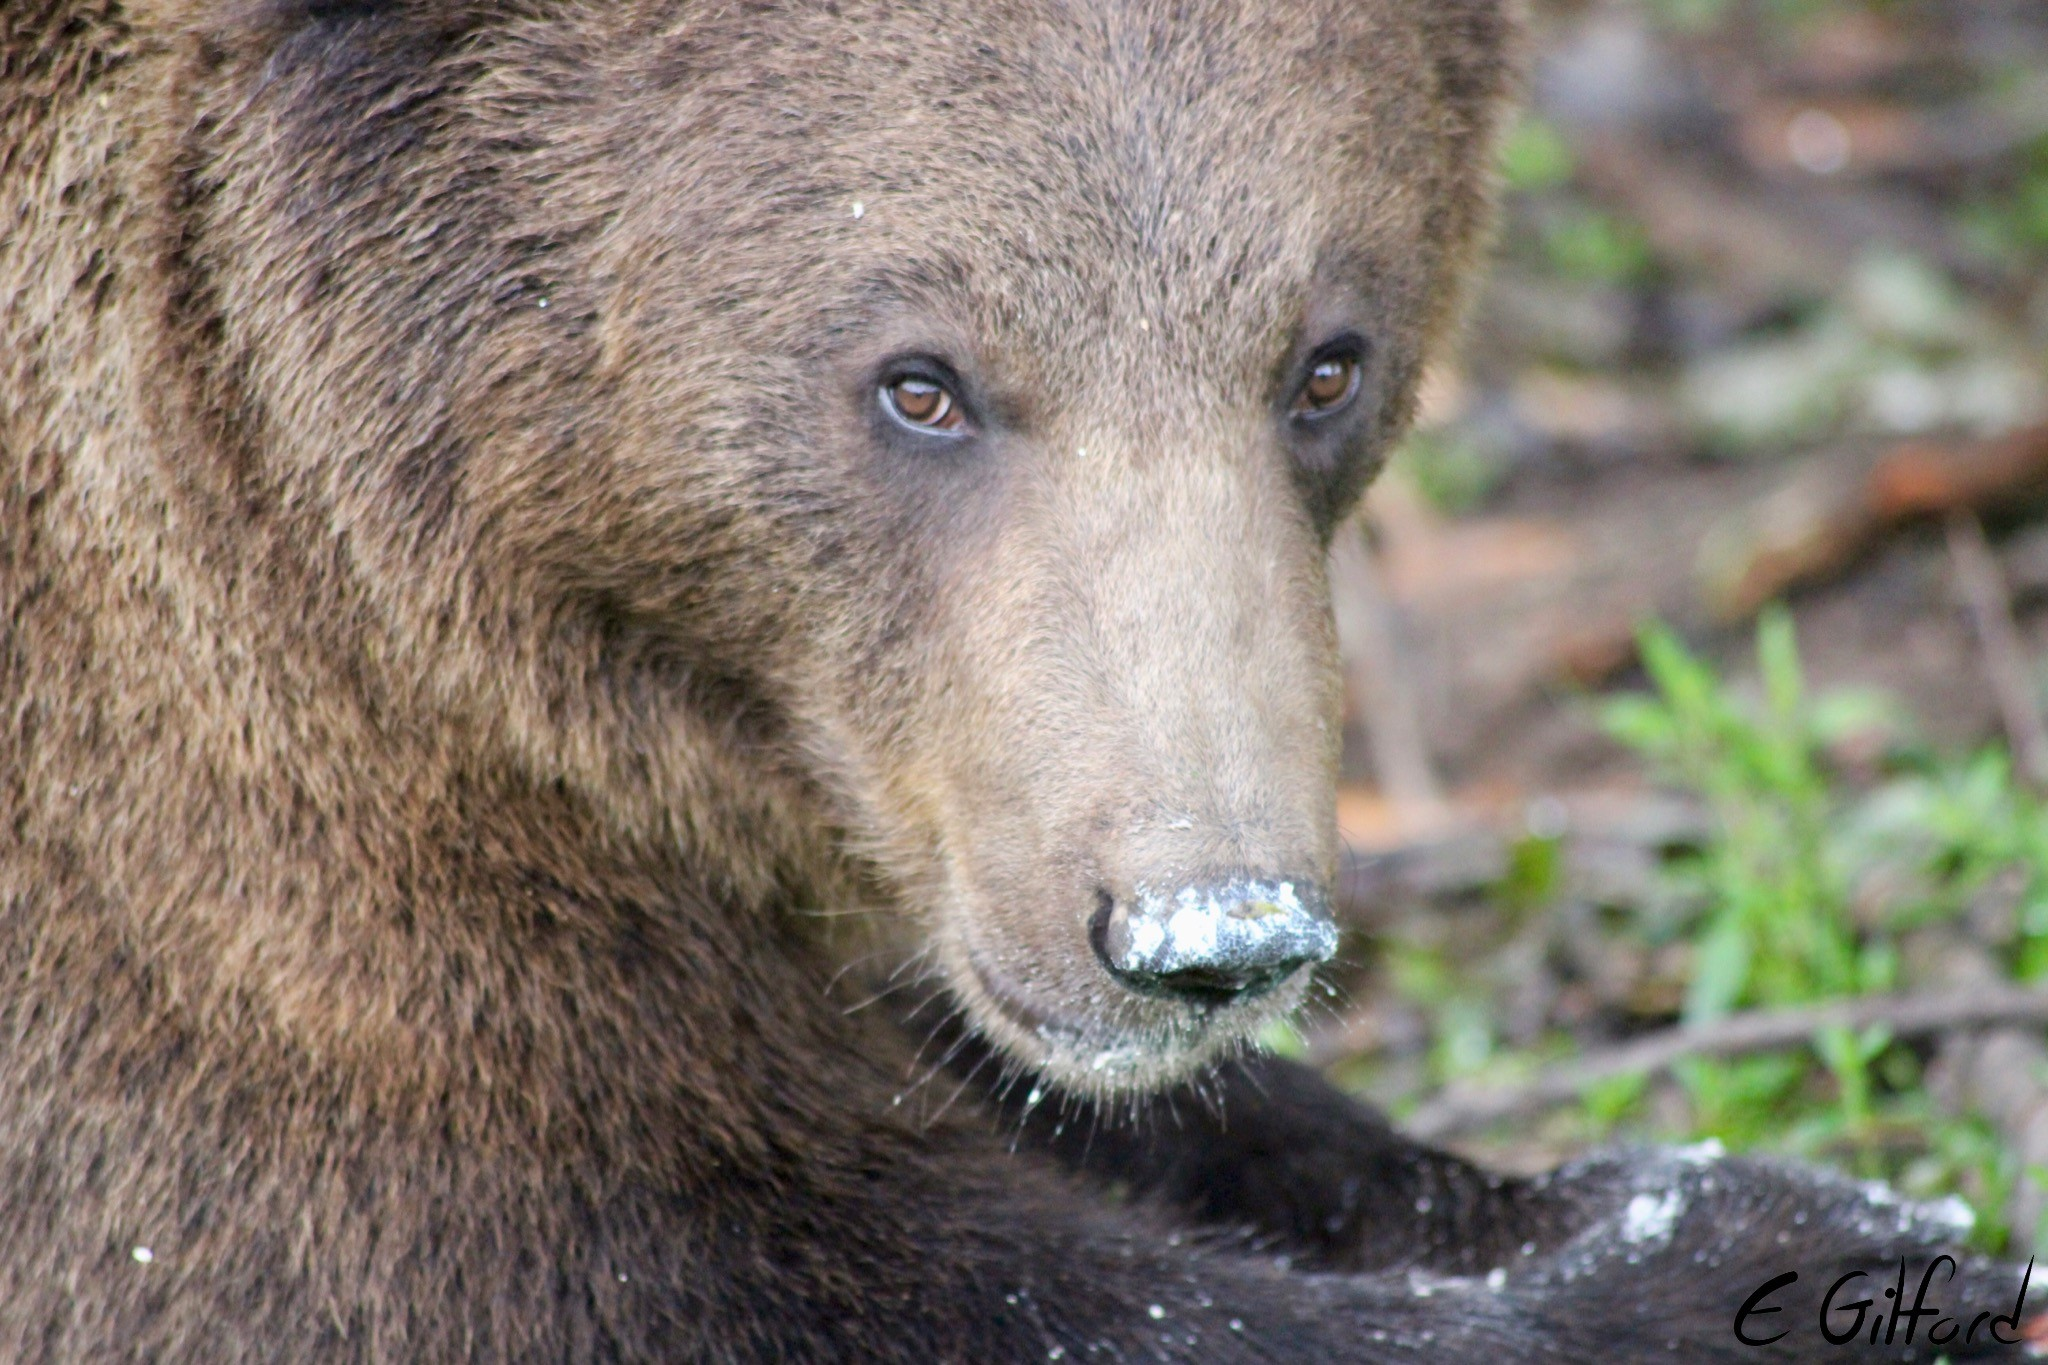 One of the bears at the bear sanctuary in Romania